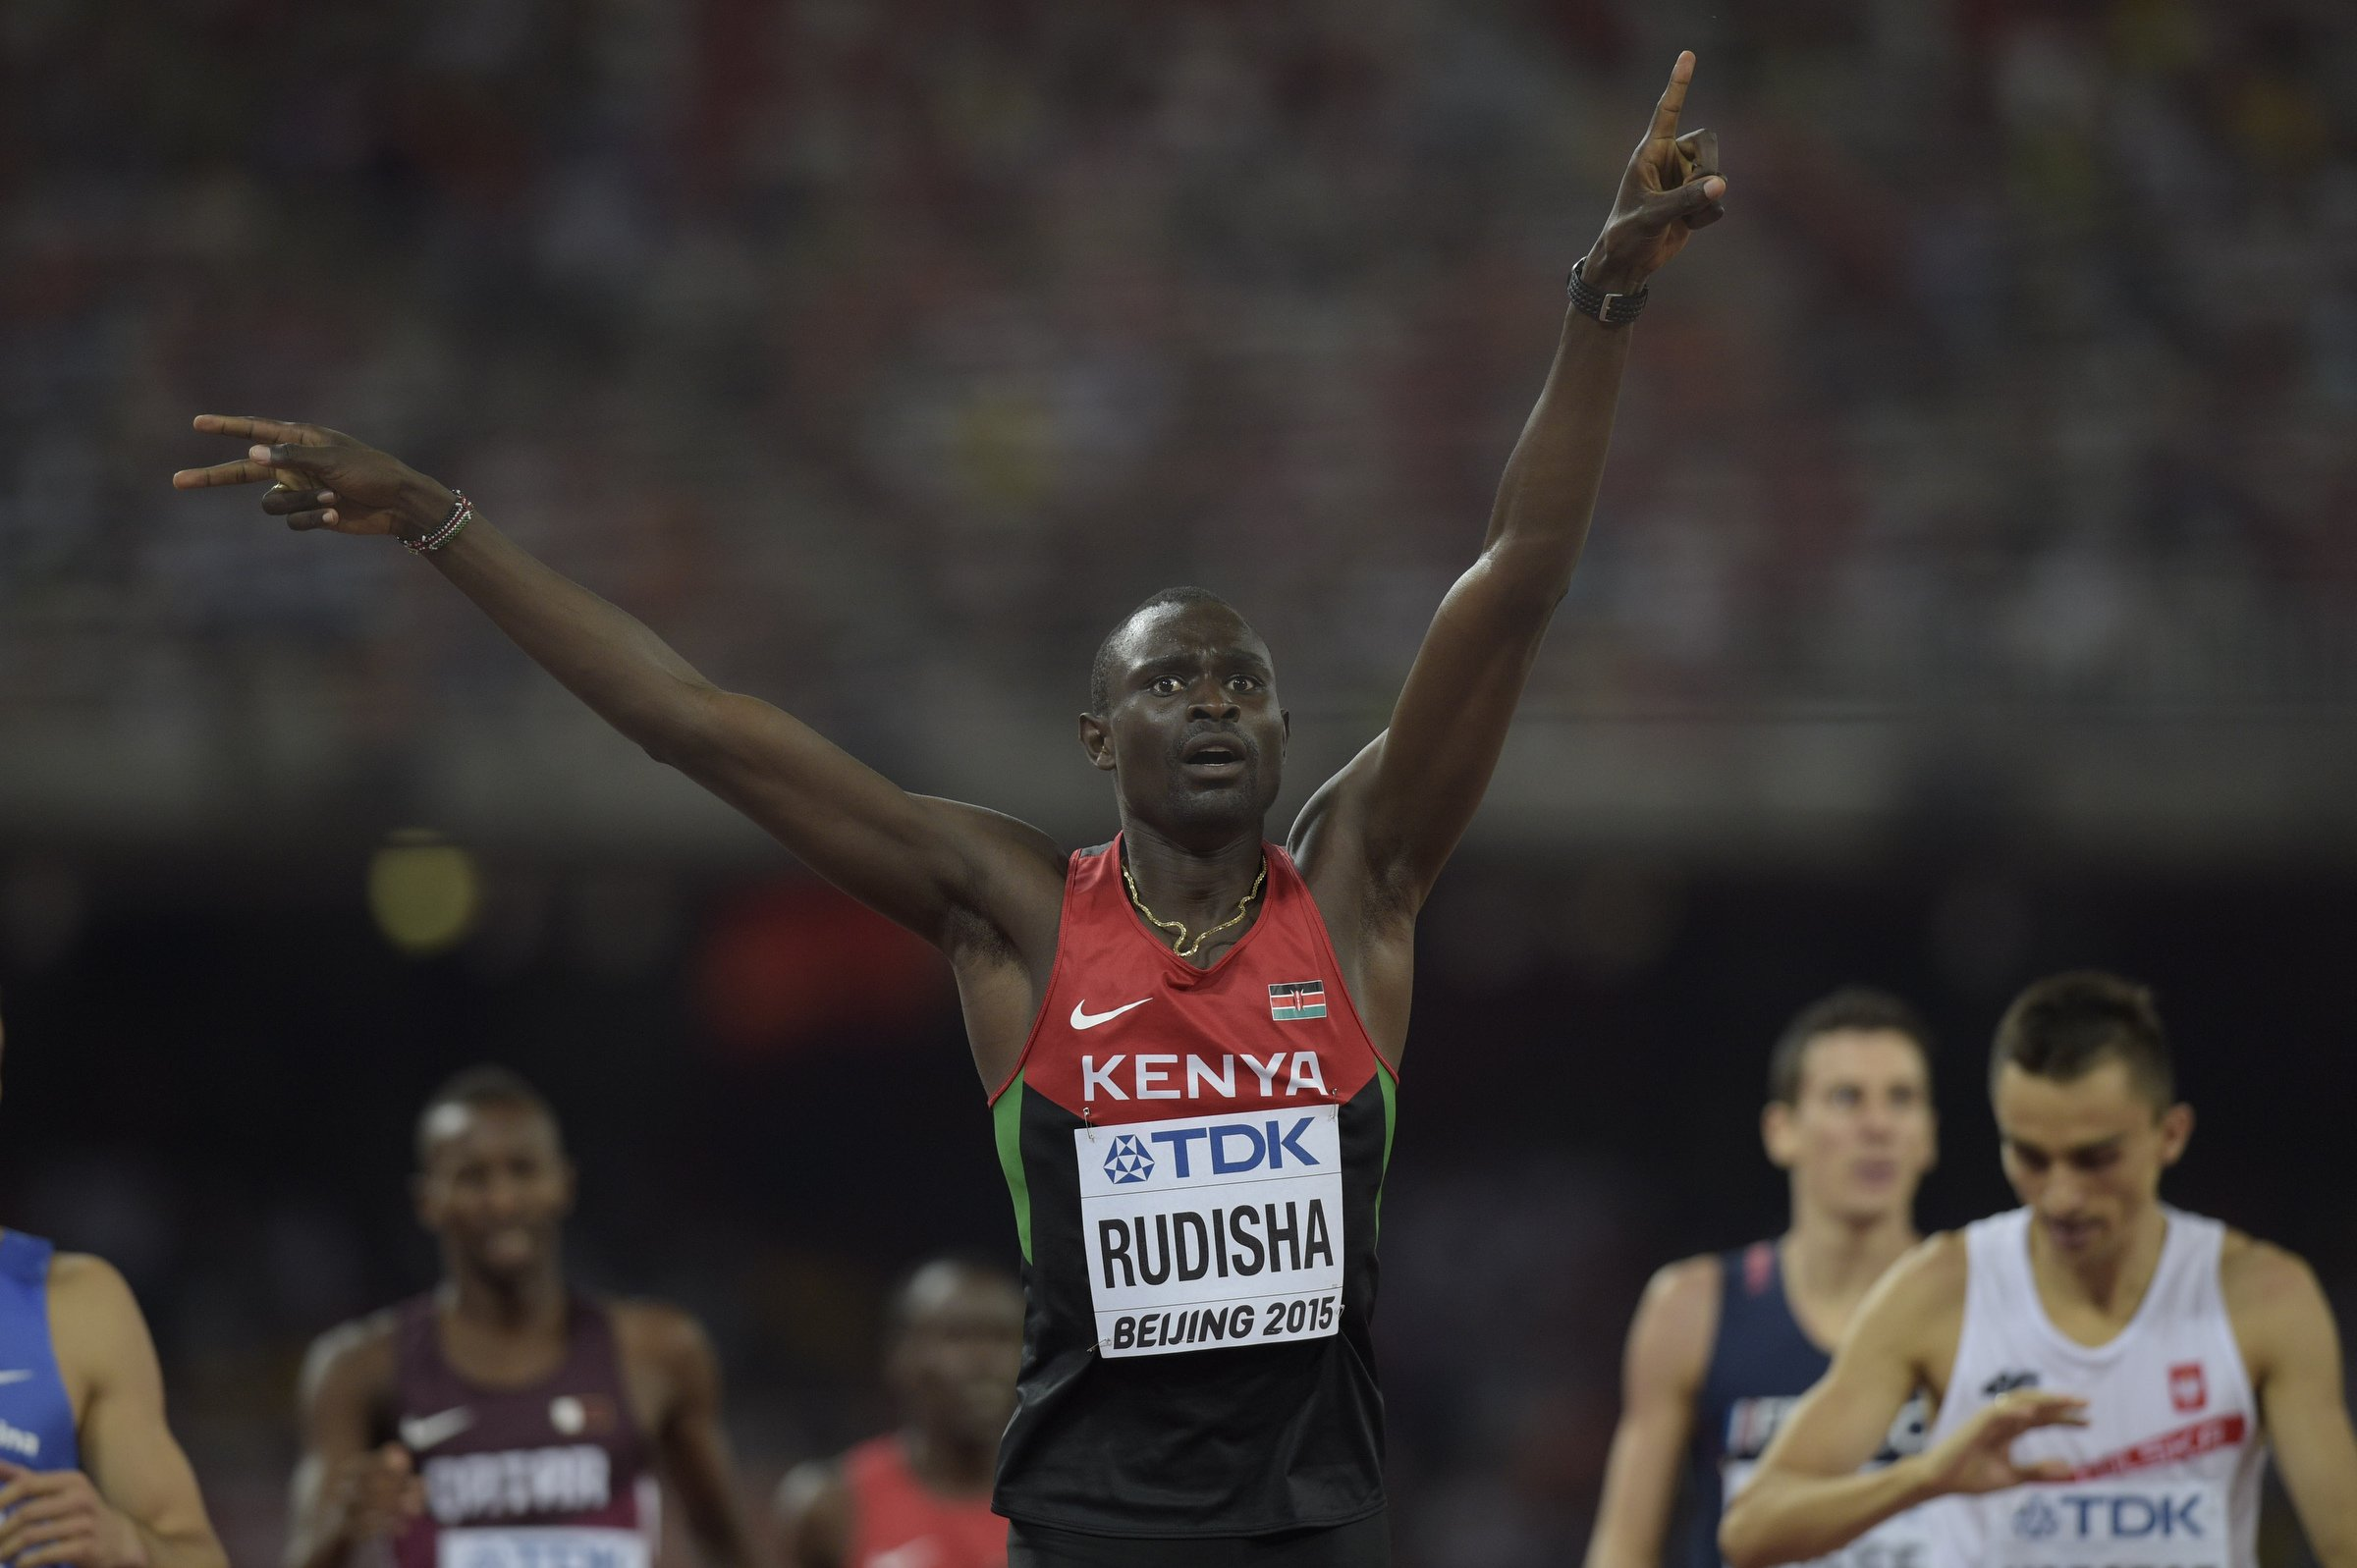 David Rudisha (KEN) won the 2012 Olympics in world record fashion but won his second world championship crown in tactical fashion with a 1:45.84 victory.